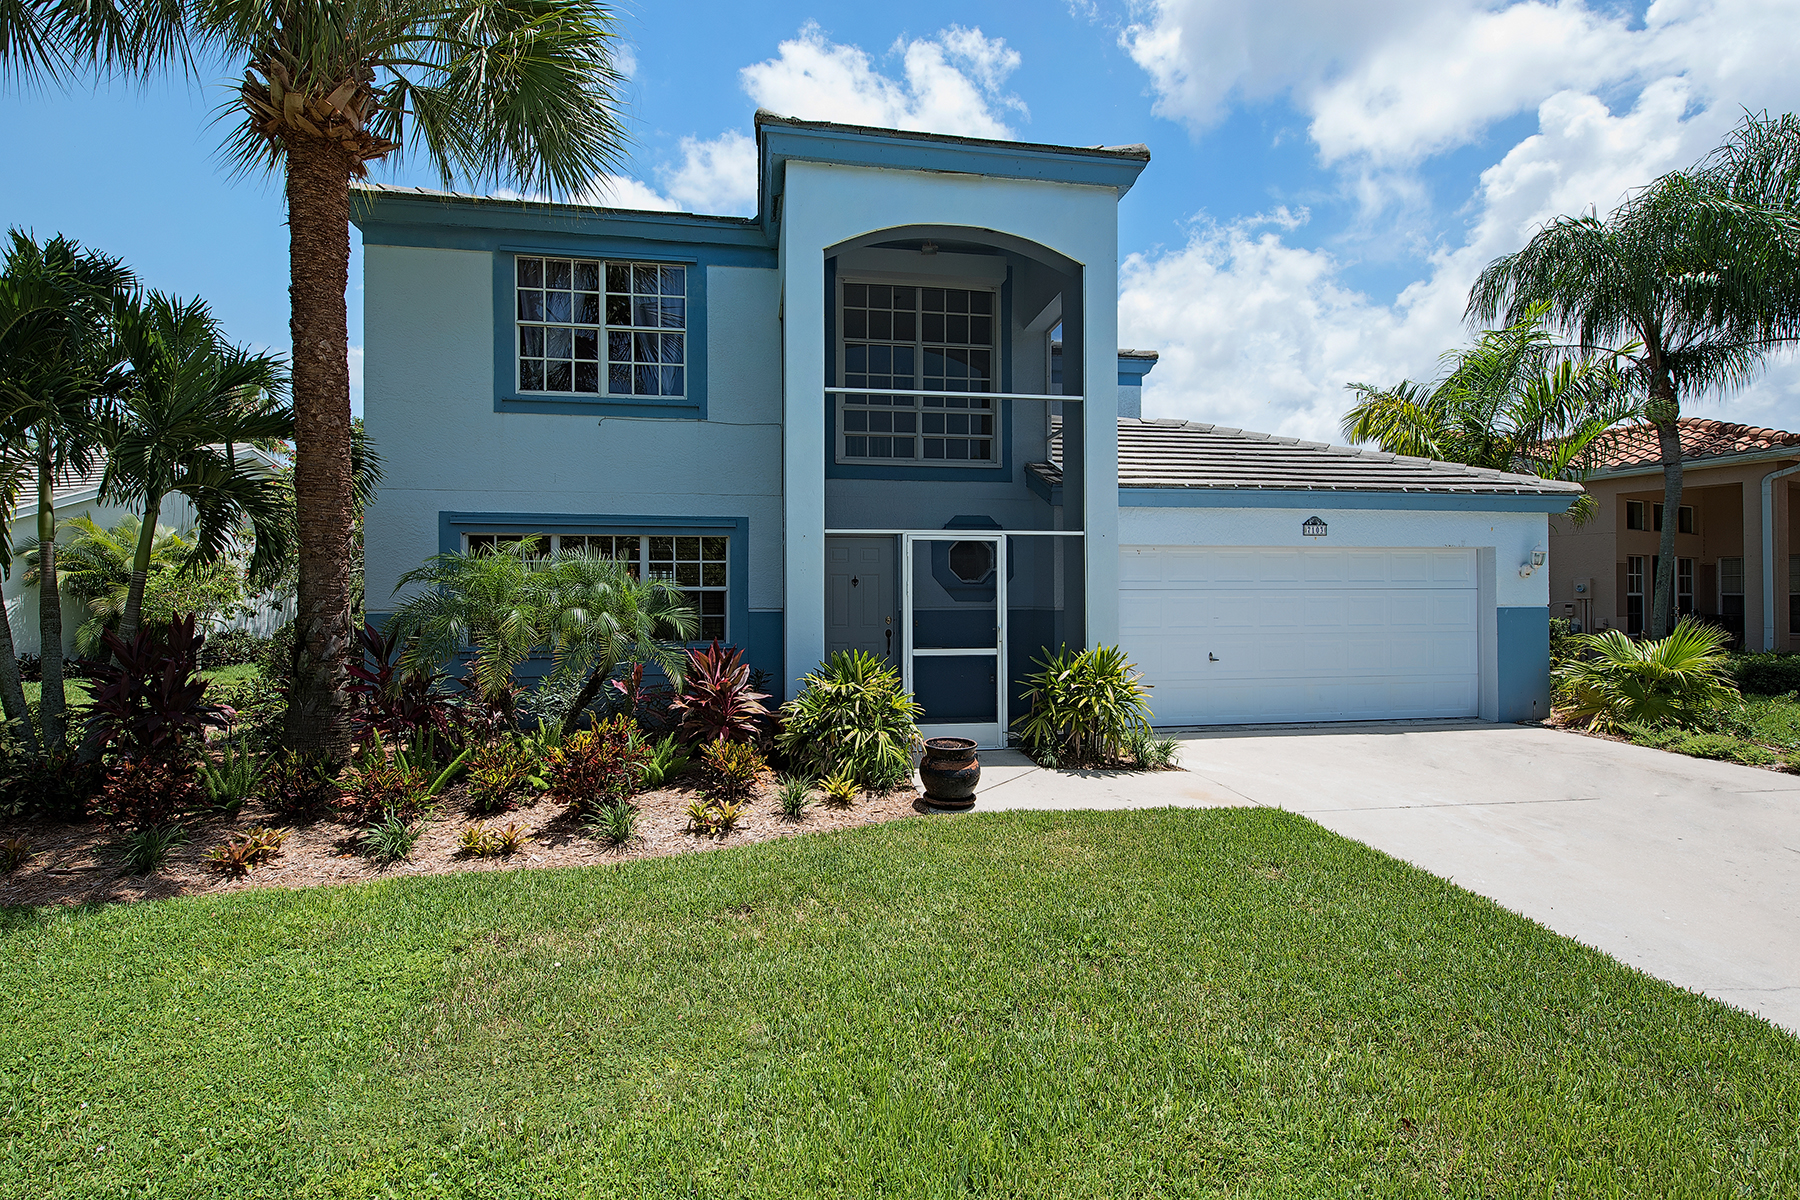 Single Family Home for Sale at 7103 Mill Pond Cir , Naples, FL 34109 7103 Mill Pond Cir Naples, Florida 34109 United States